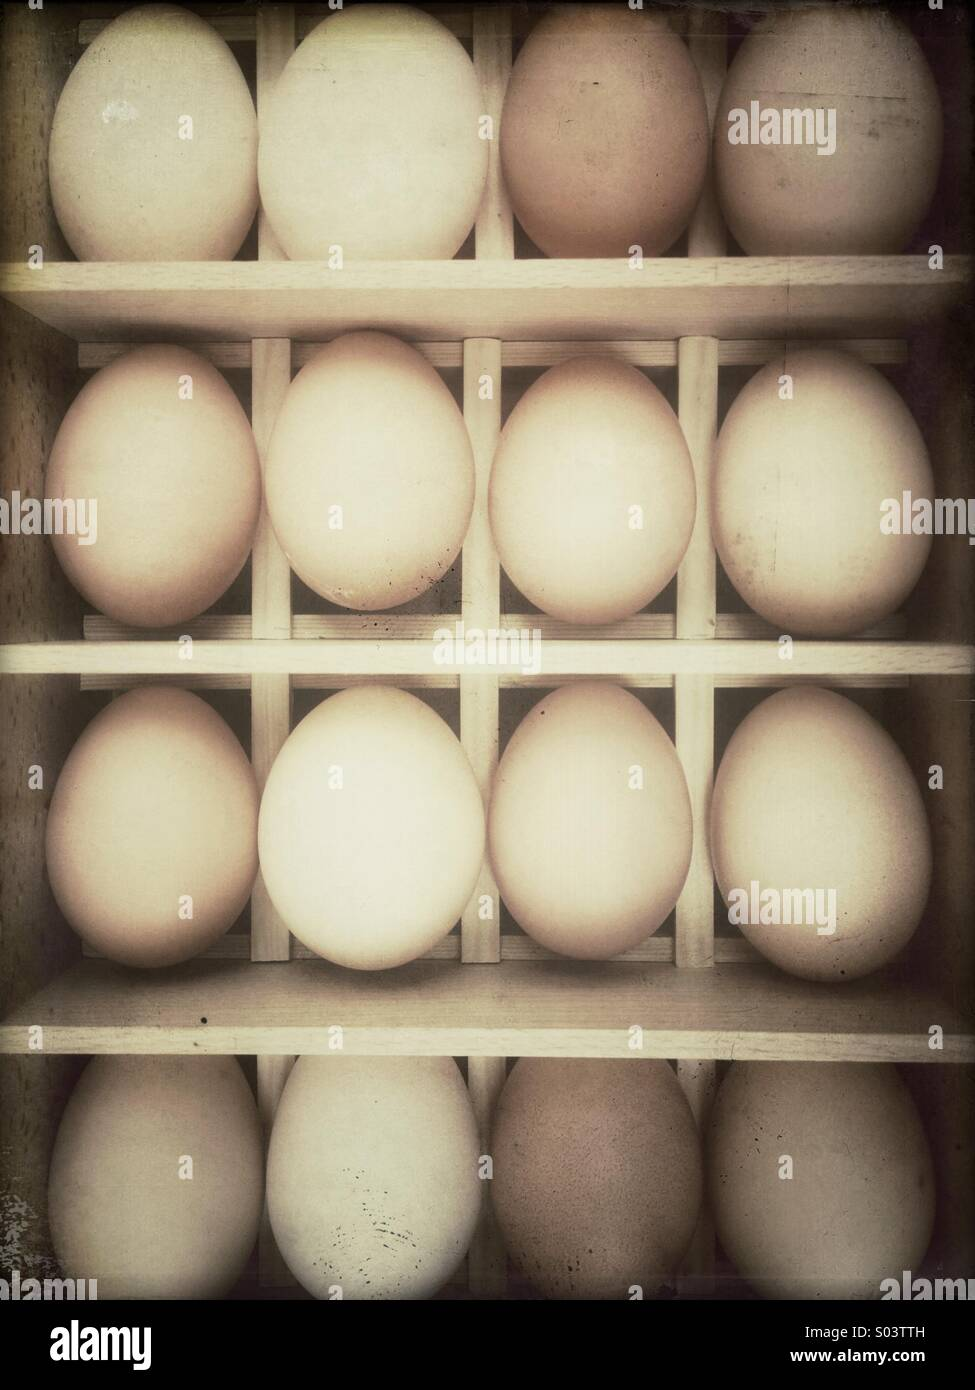 Rows of fresh chicken eggs in a wooden box - Stock Image